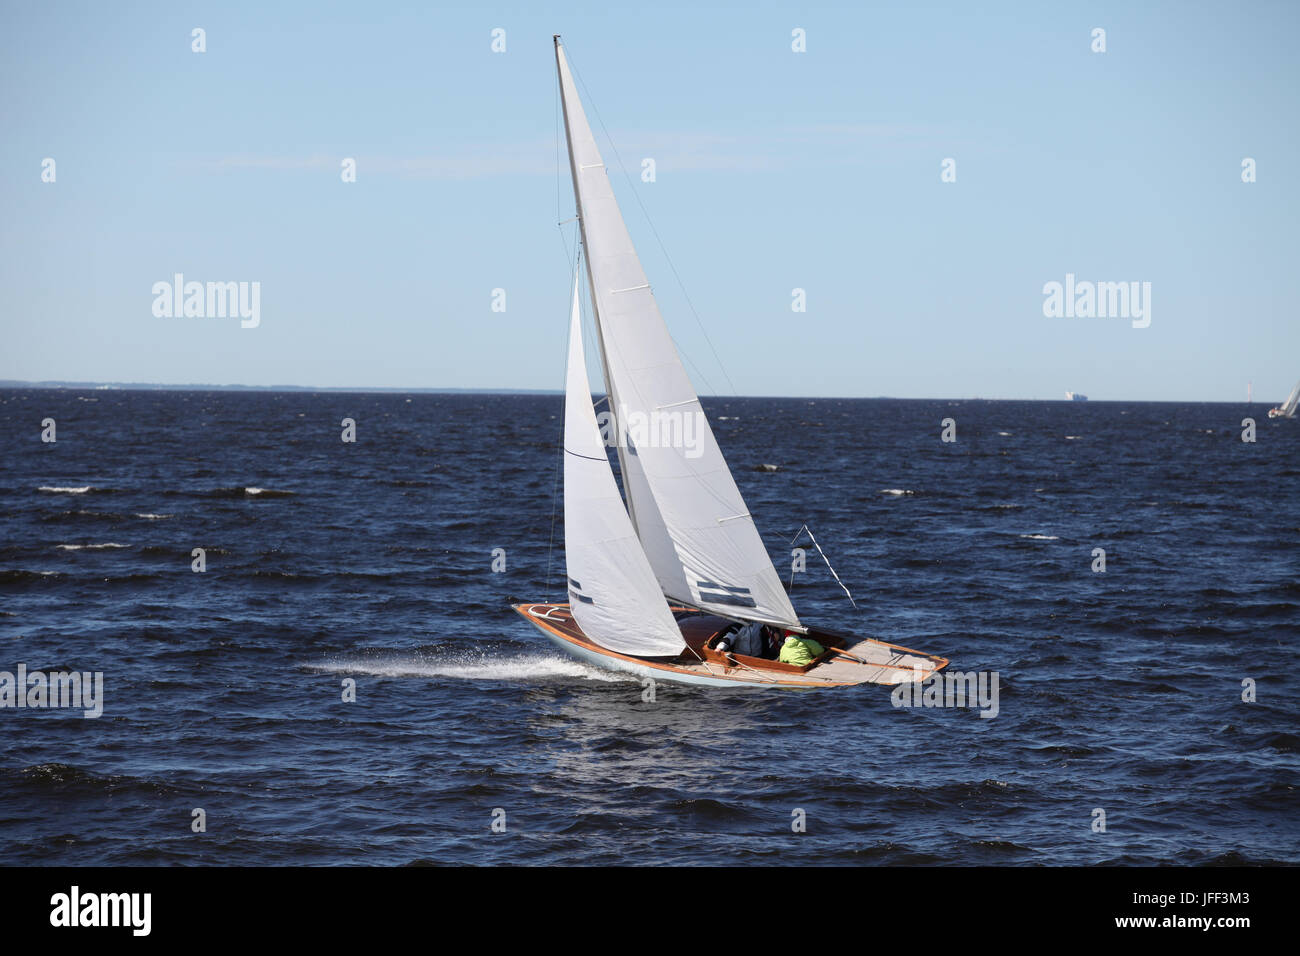 sailboat in sea in motion - Stock Image